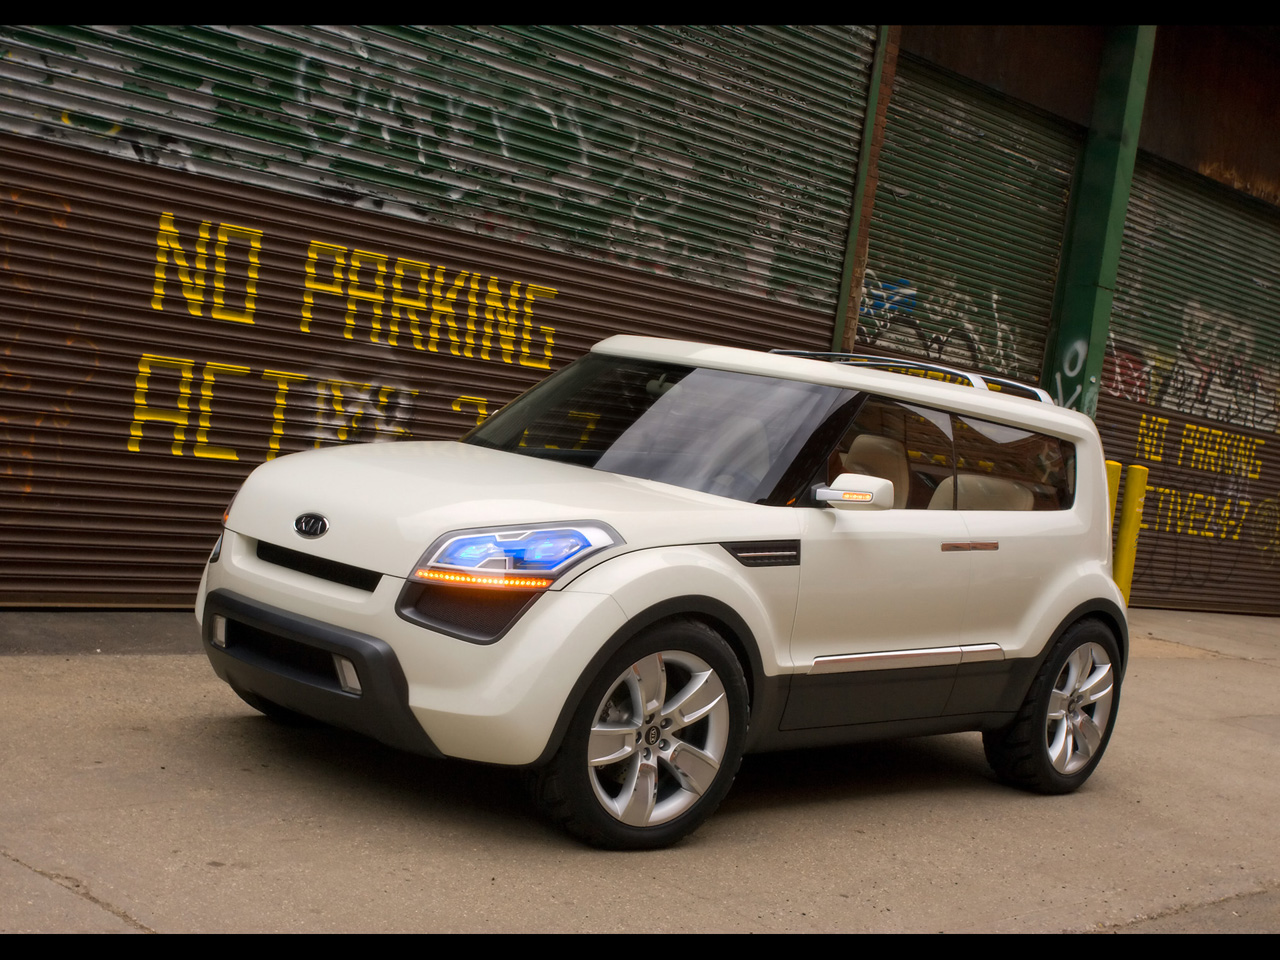 kia soul 2011 review and specification new cars tuning. Black Bedroom Furniture Sets. Home Design Ideas